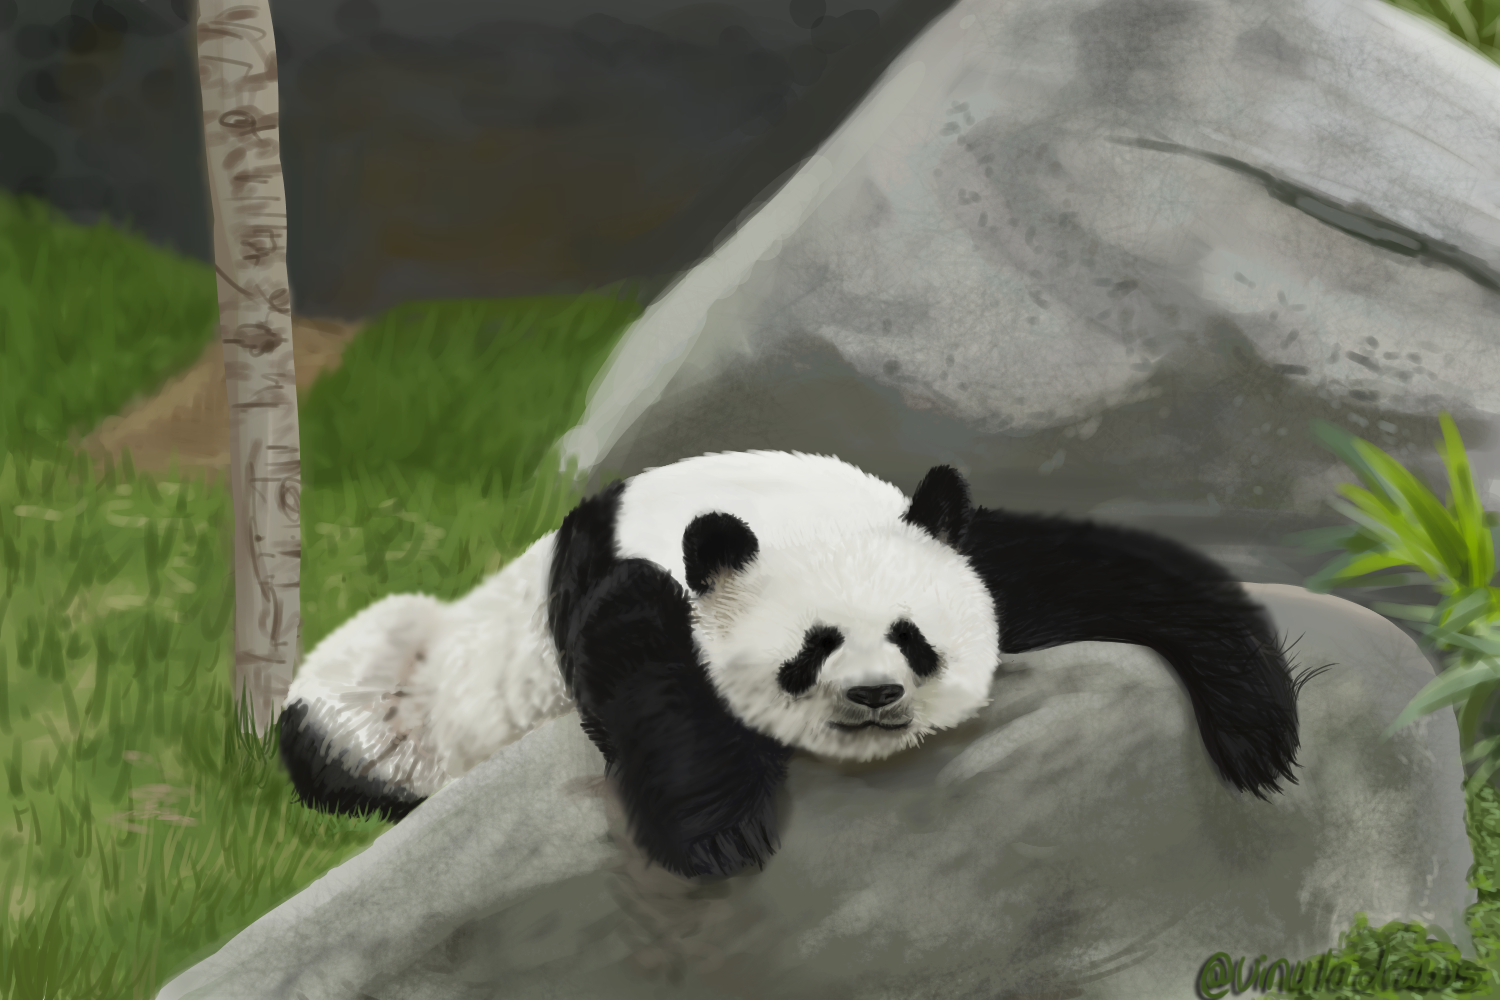 Cute Panda By VinulaDraws On Newgrounds